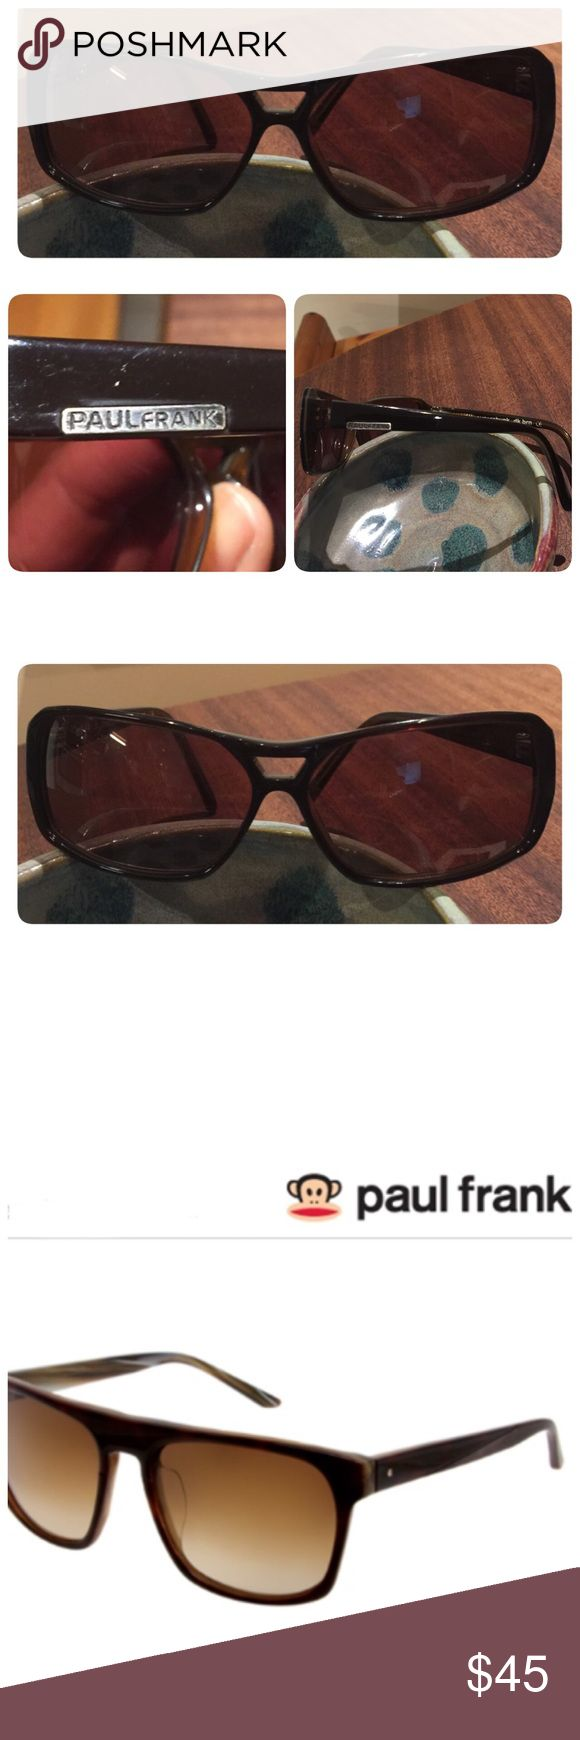 Paul Frank Sunglasses The Semi-Rectangle Sunglasses from Paul Frank are stylish for men and women. Light wear as photographed. Paul Frank Accessories Sunglasses